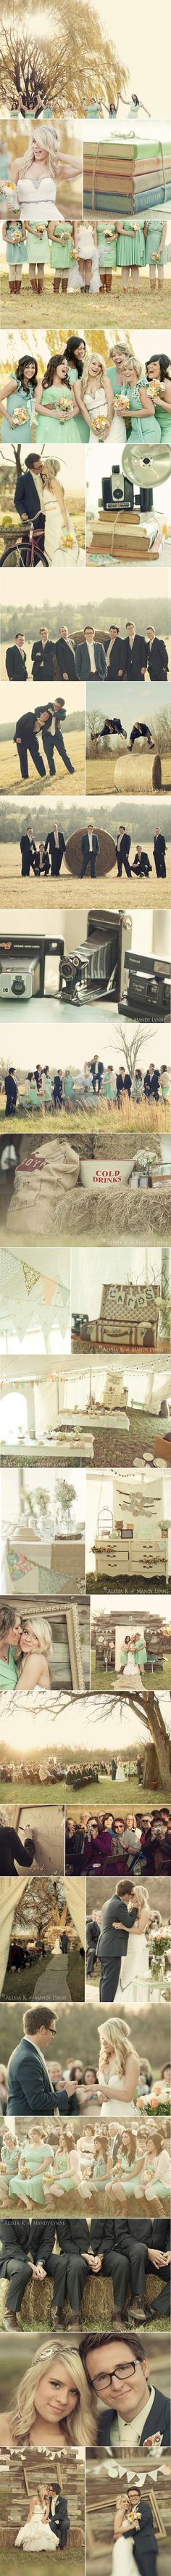 love all the rustic details